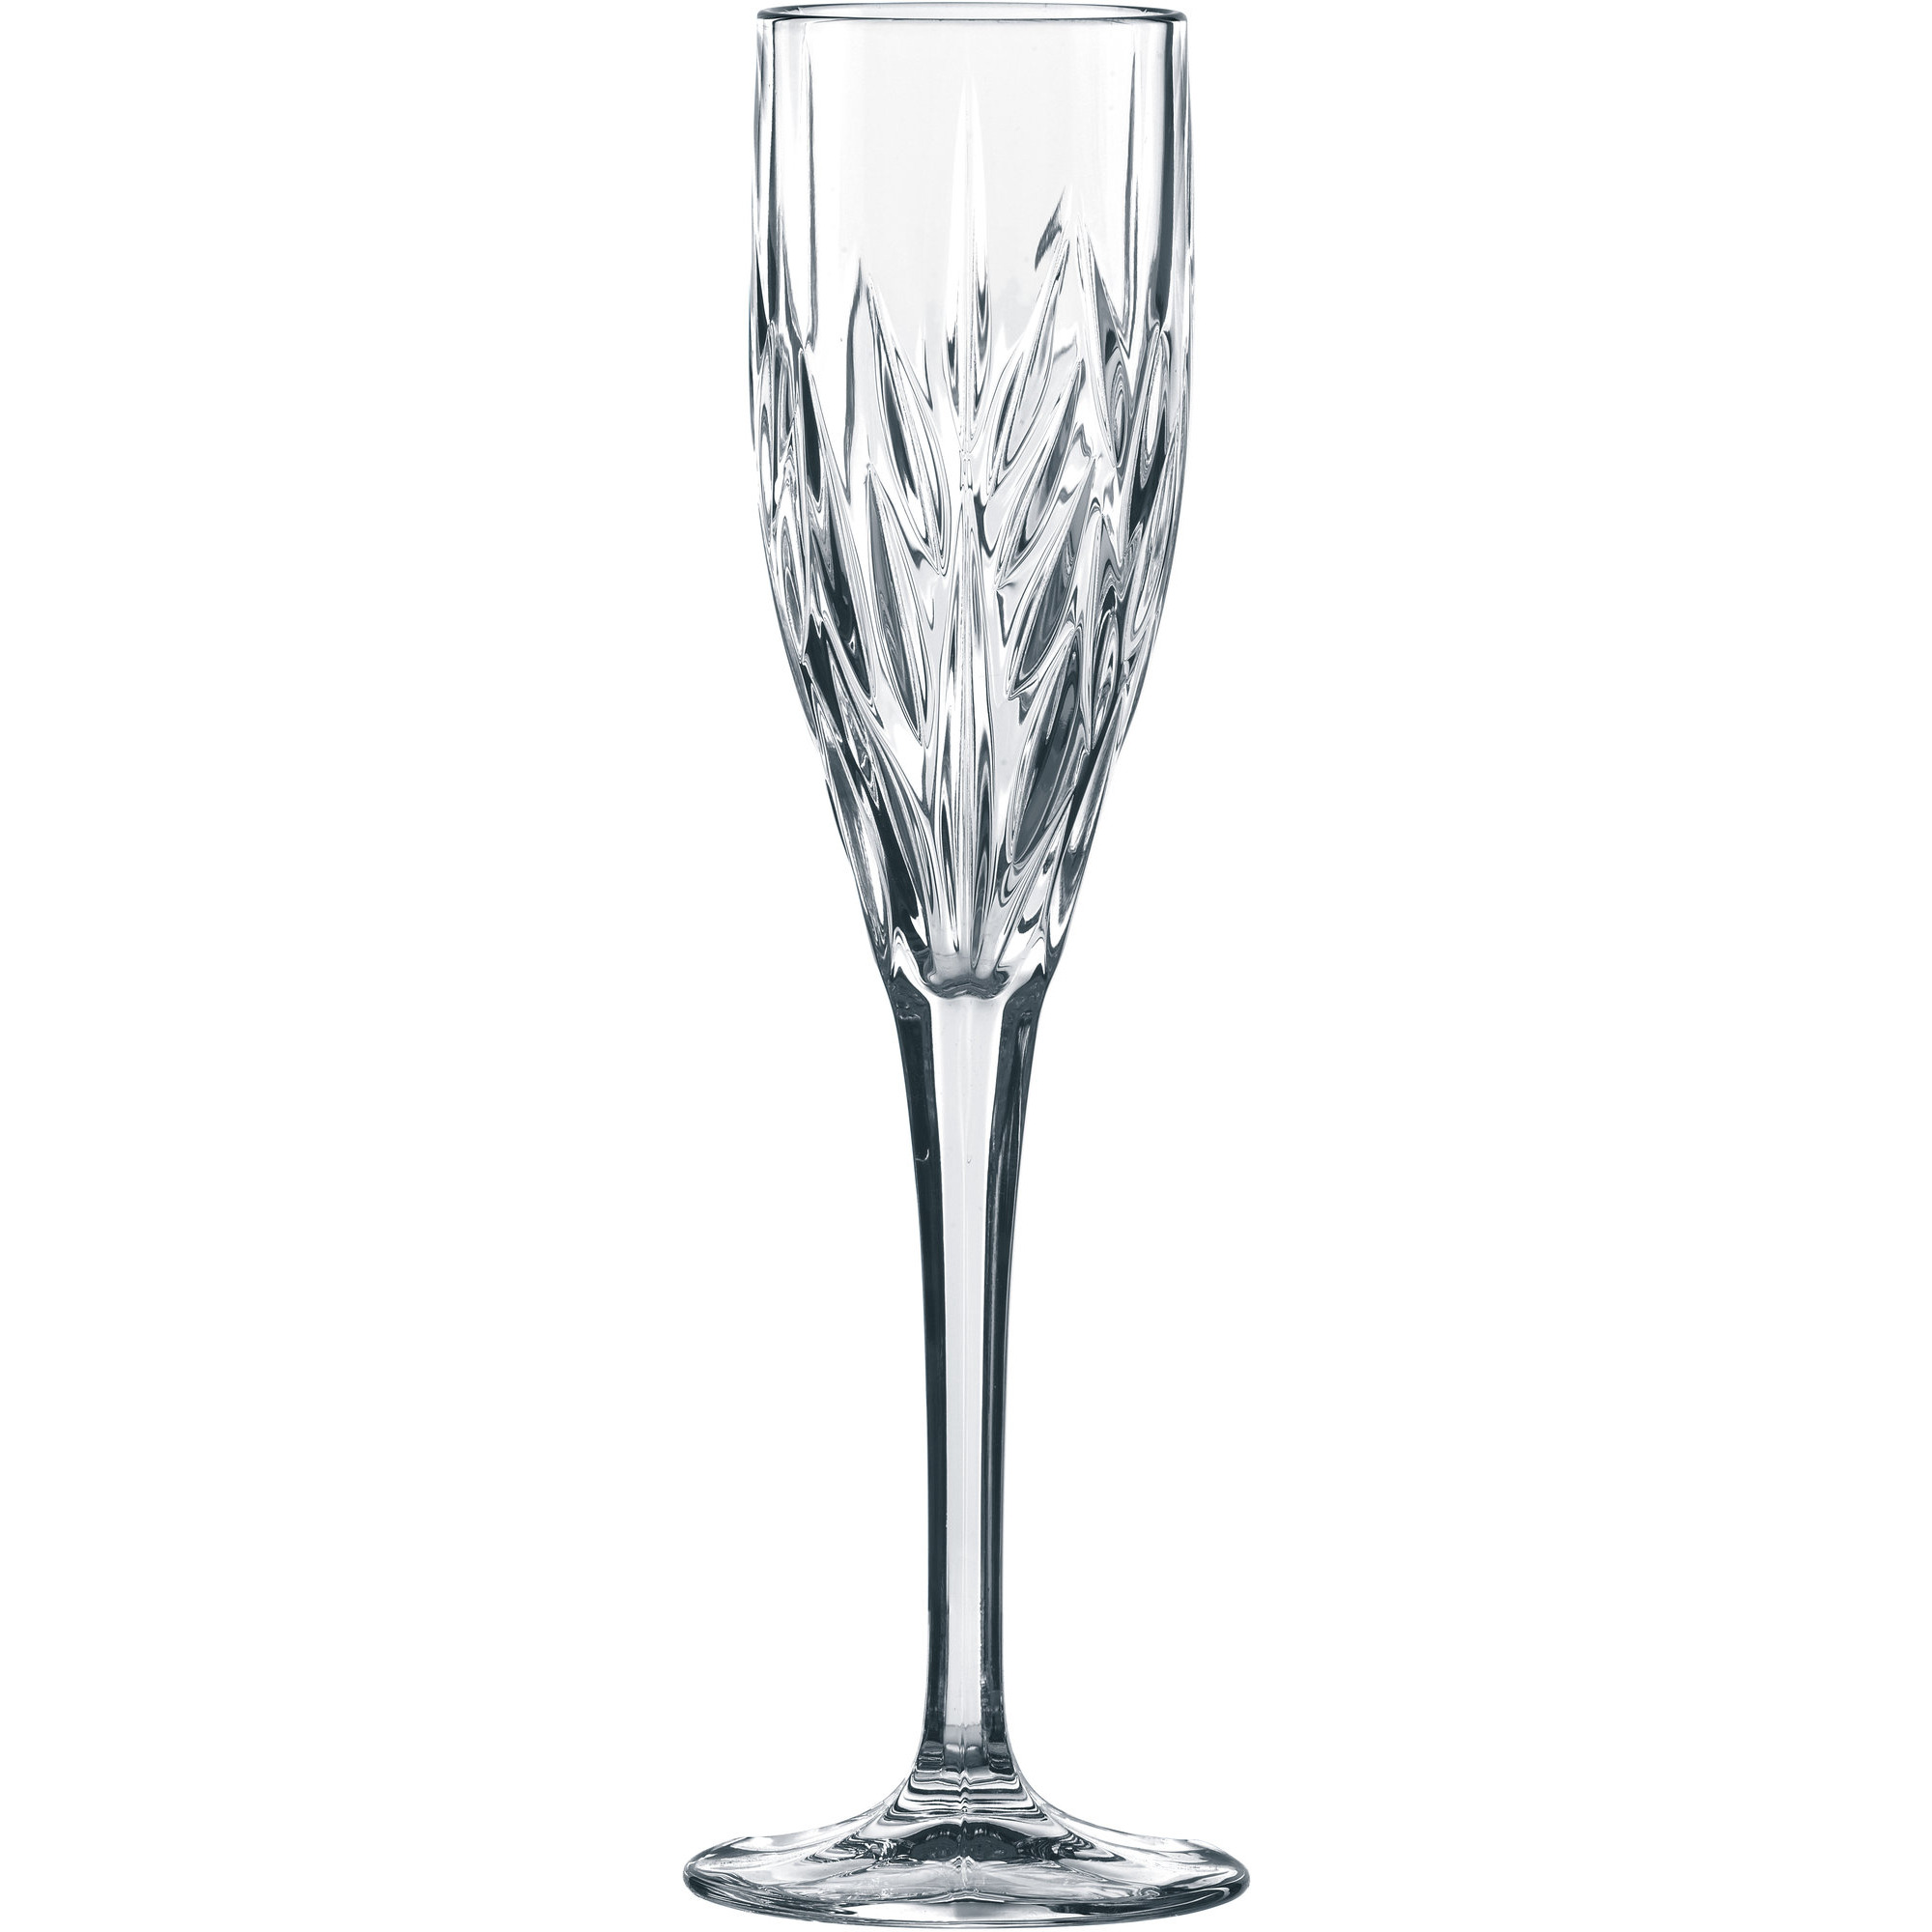 Nachtmann Imperial Champagneglas 14cl 4-p